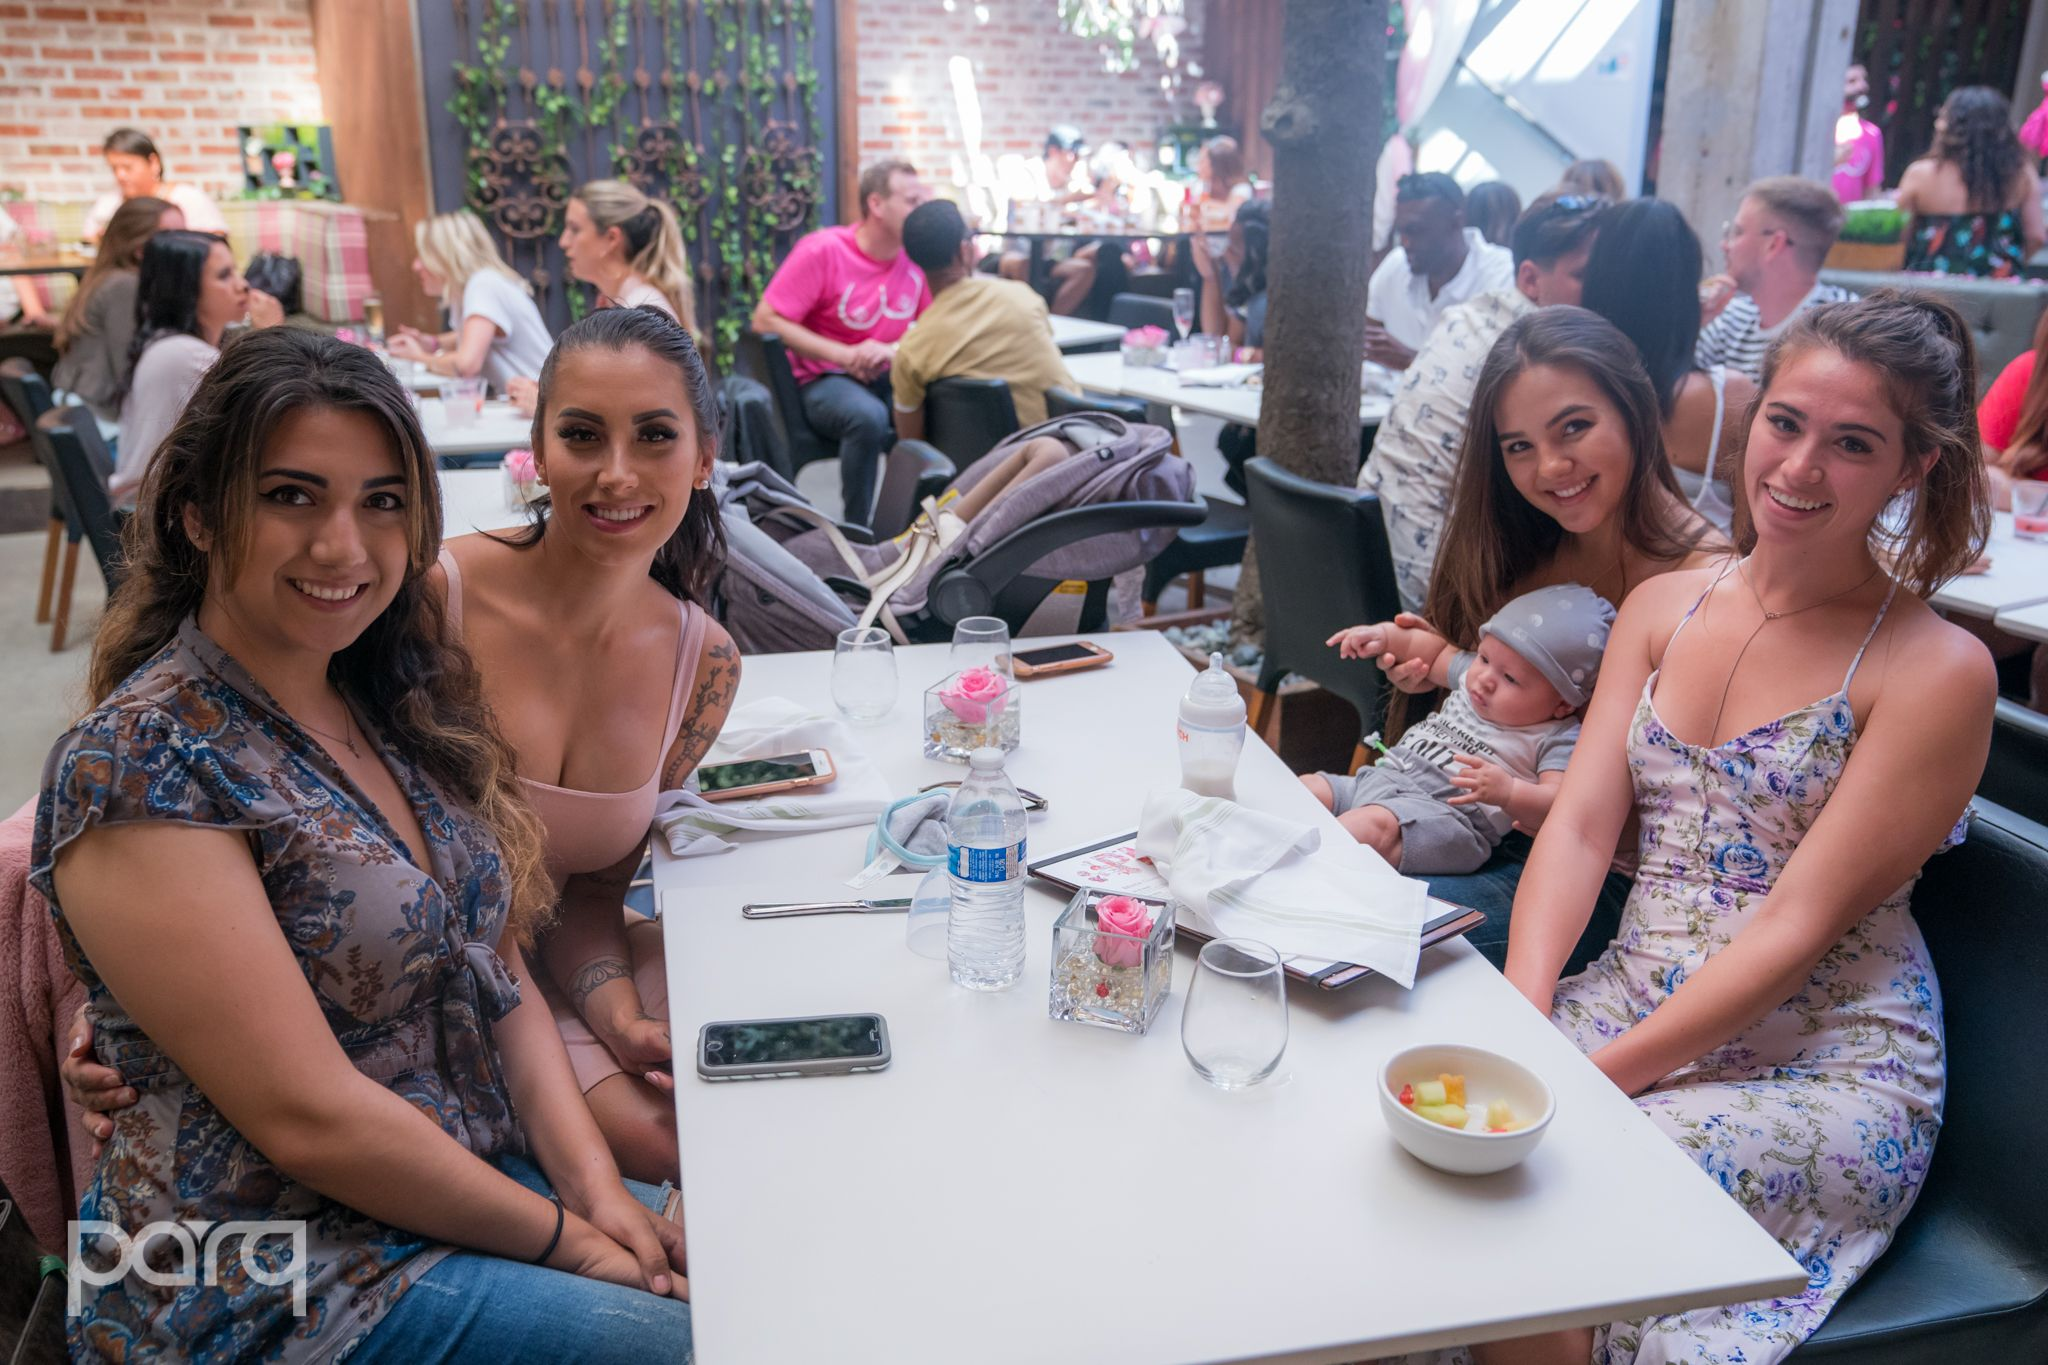 10.21.18 Parq - Breast Brunch-23.jpg